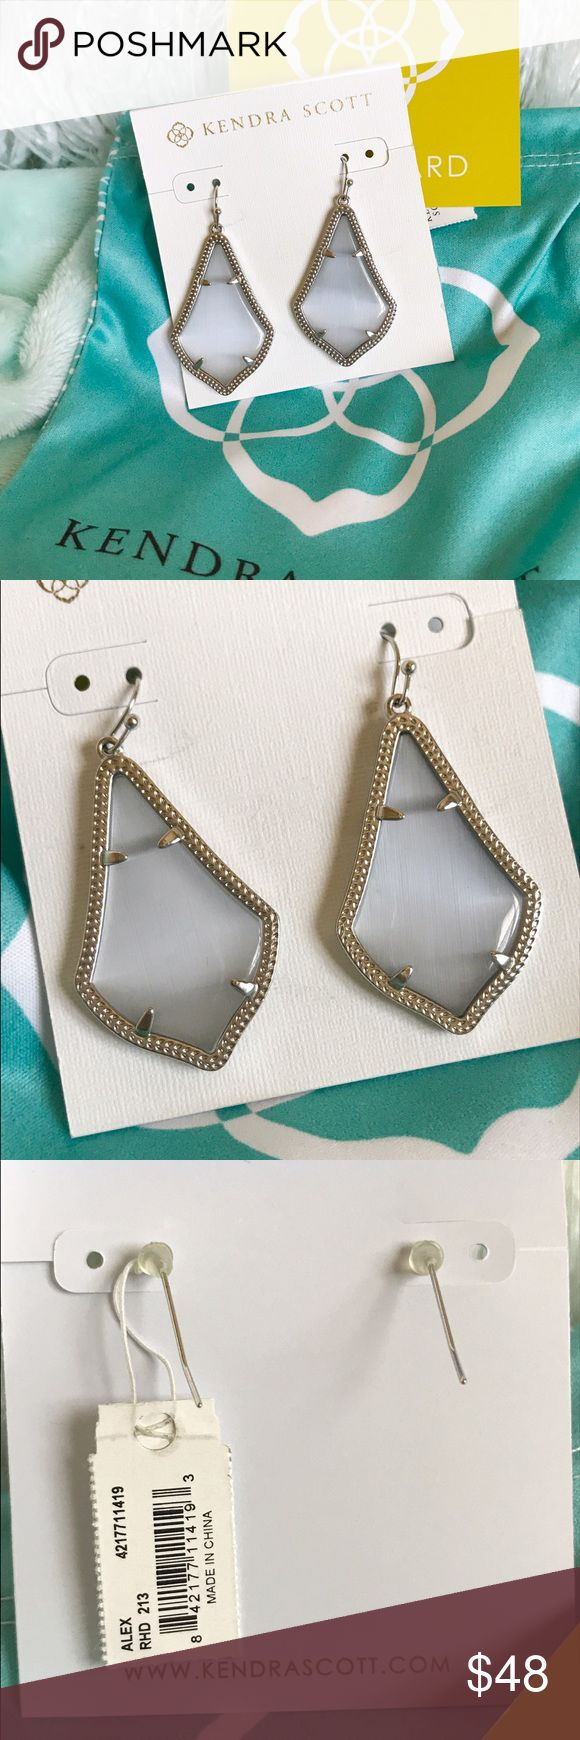 NWT Kendra Scott Alex Rhodium Slate Earrings Brand new Kendra Scott Alex earrings.  In Rhodium Slate Cats Eye (silver hardware).  Last photo shows size comparison only.  Use the offer button to make your offer - Kendra is having a sale on these today, and so am I!! 😊 Kendra Scott Jewelry Earrings